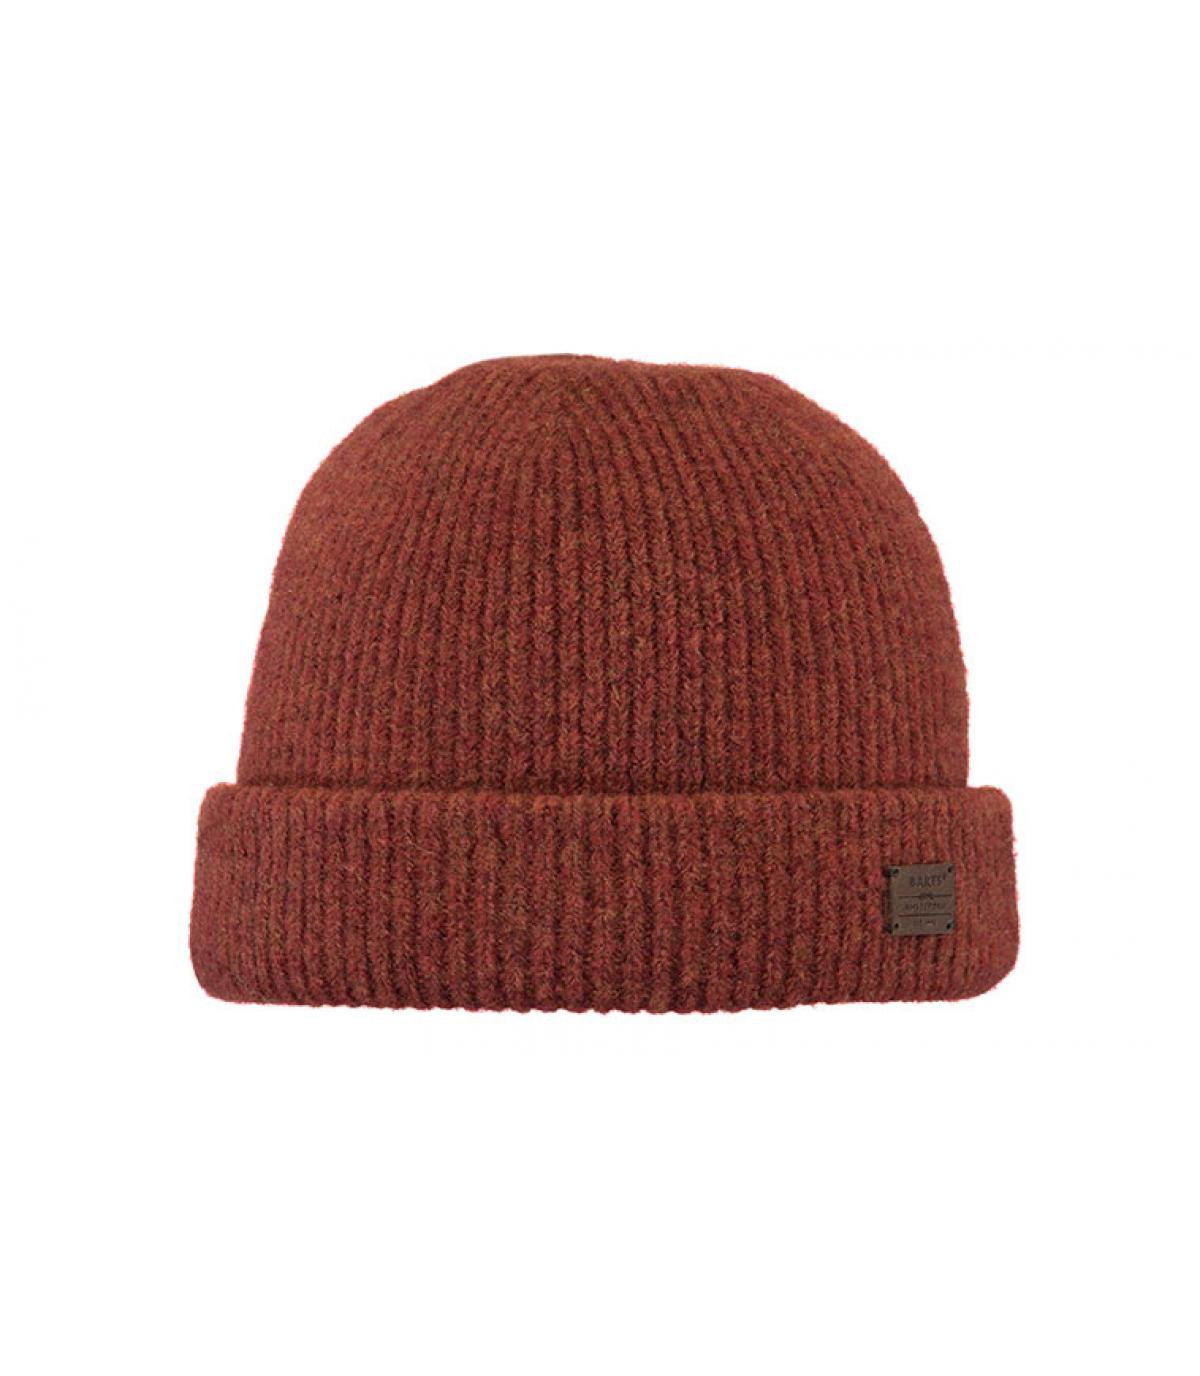 Détails Andreso Beanie rust - image 2